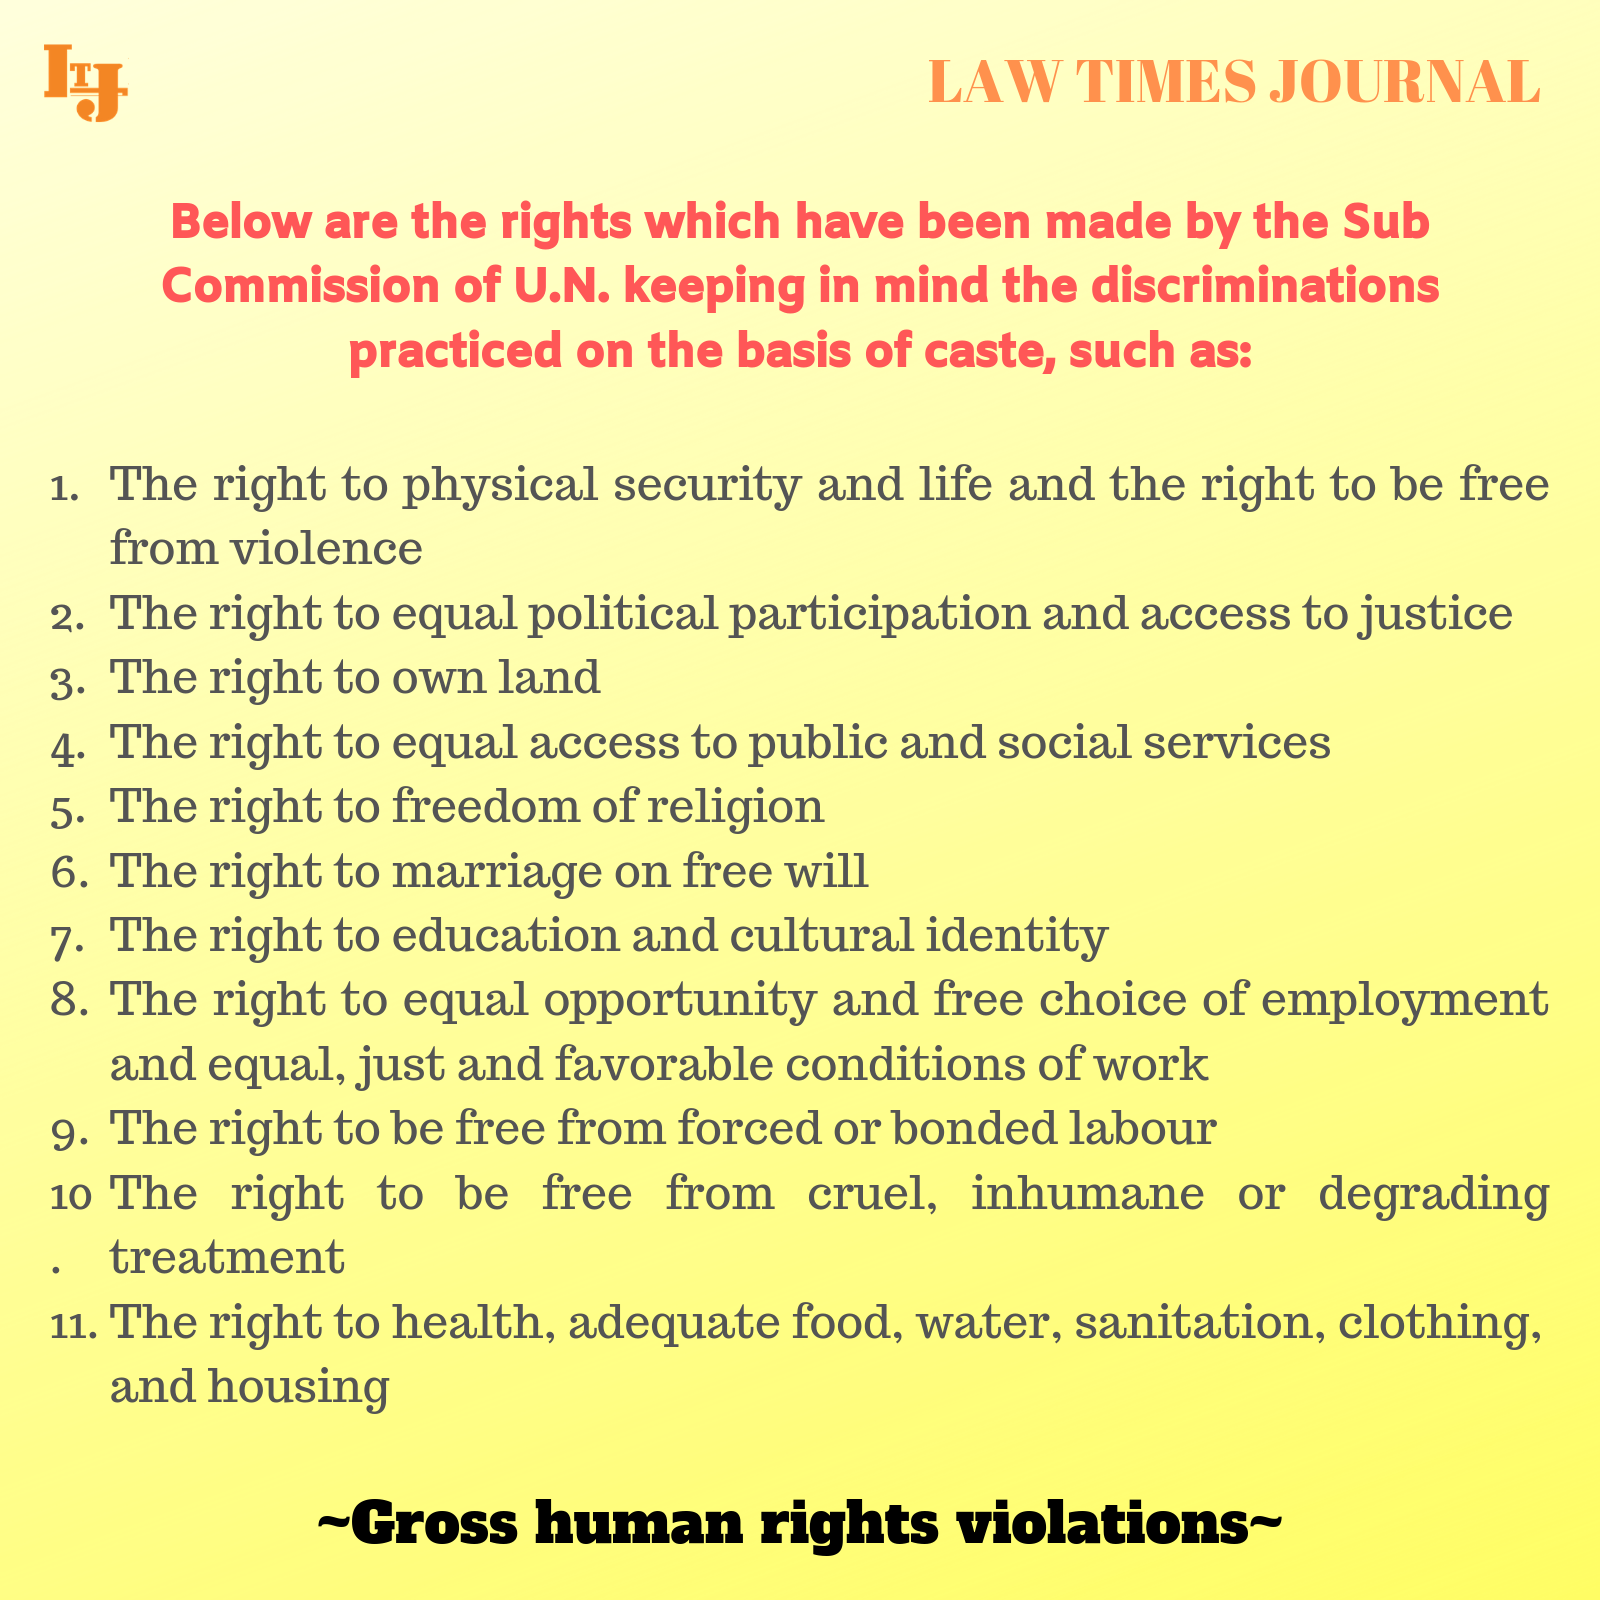 Gross Human Rights Violations Law Times Journal Free Law Articles Legal Articles Right To Education Studying Law Free Education